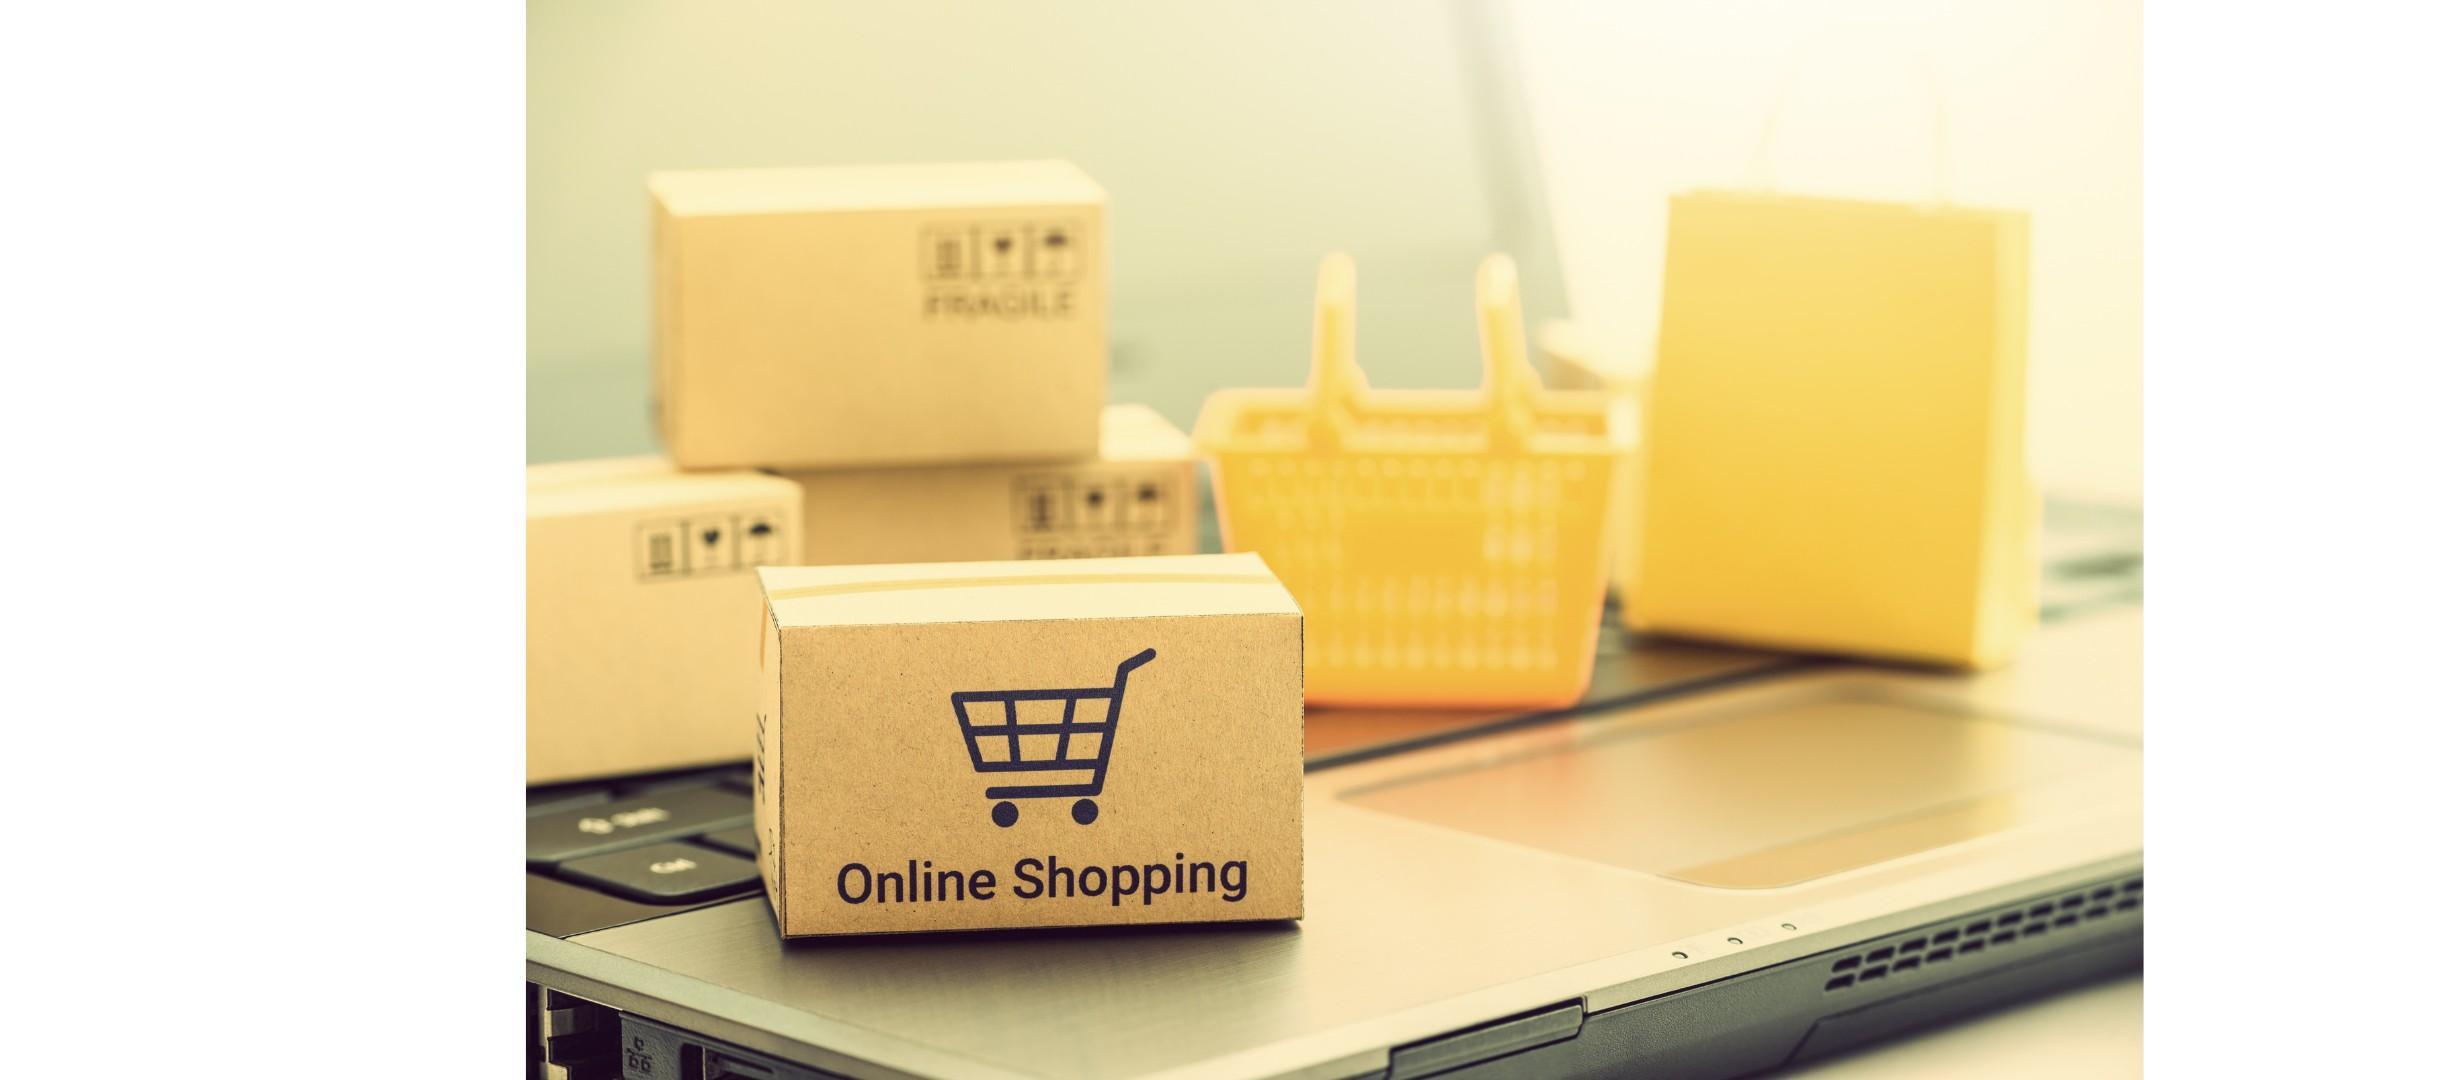 image indicating online shopping